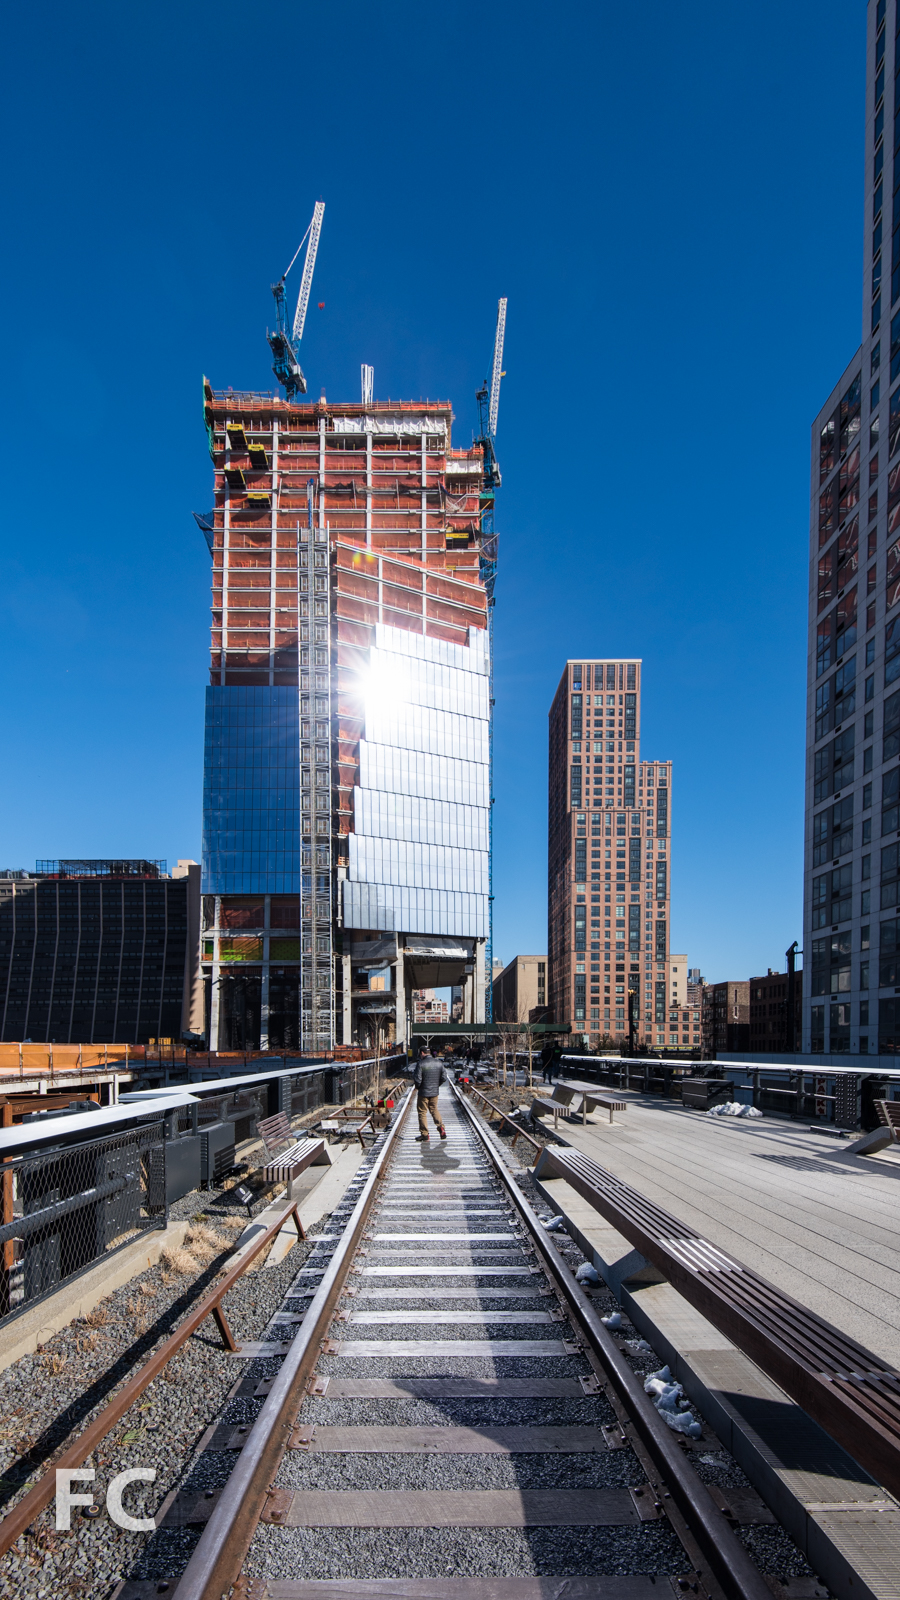 West facade of 10 Hudson Yards (left) and the Abington House (right) from the High Line park.